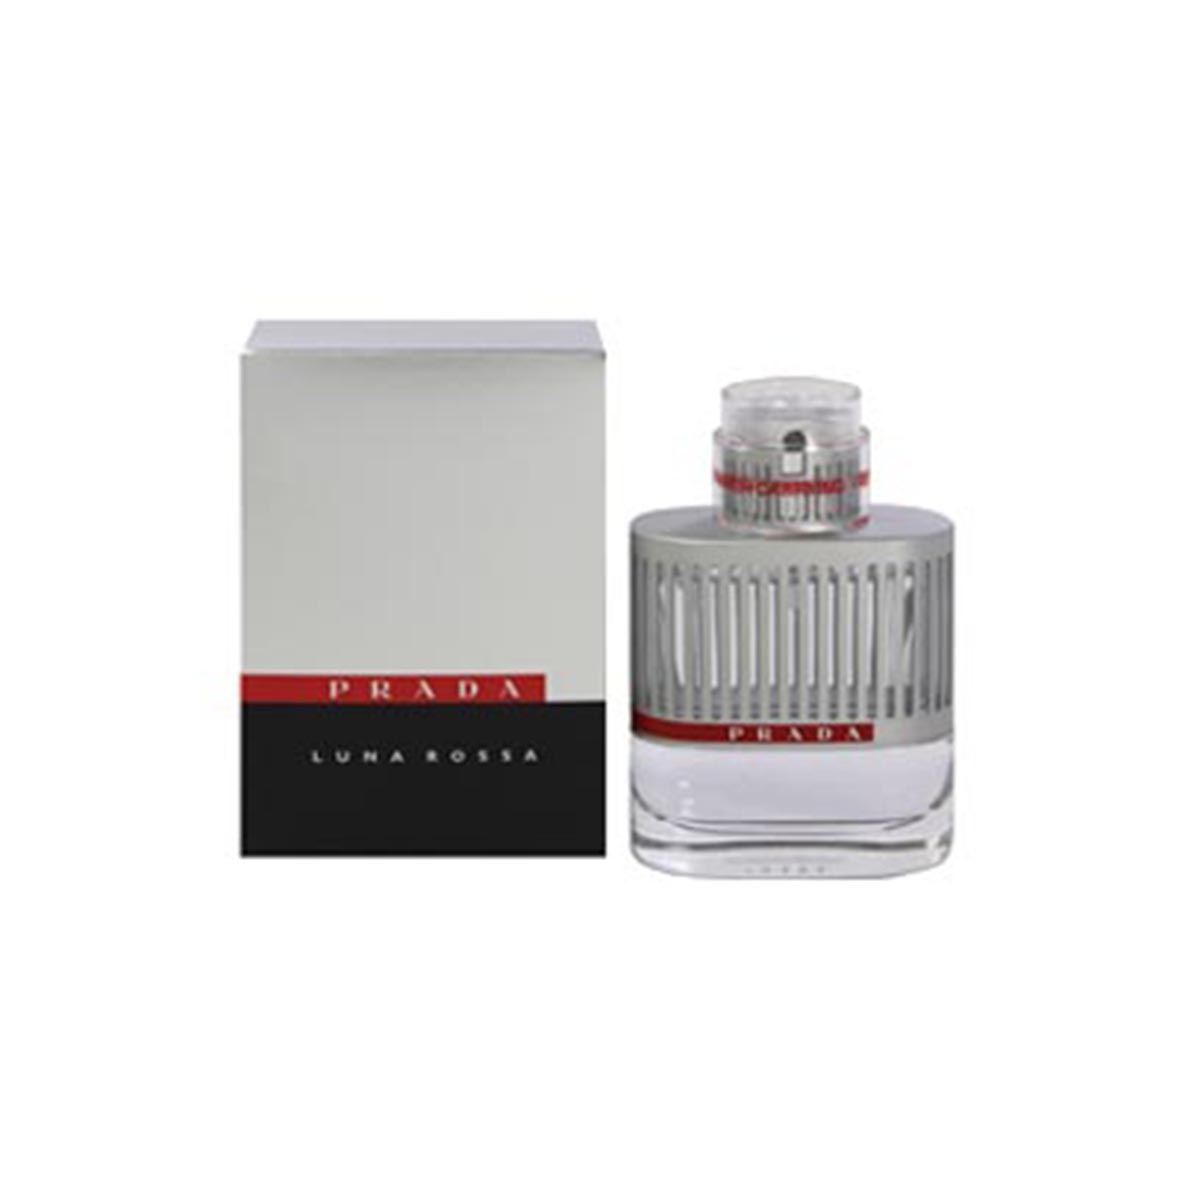 Prada luna rossa men eau de toilette 50ml